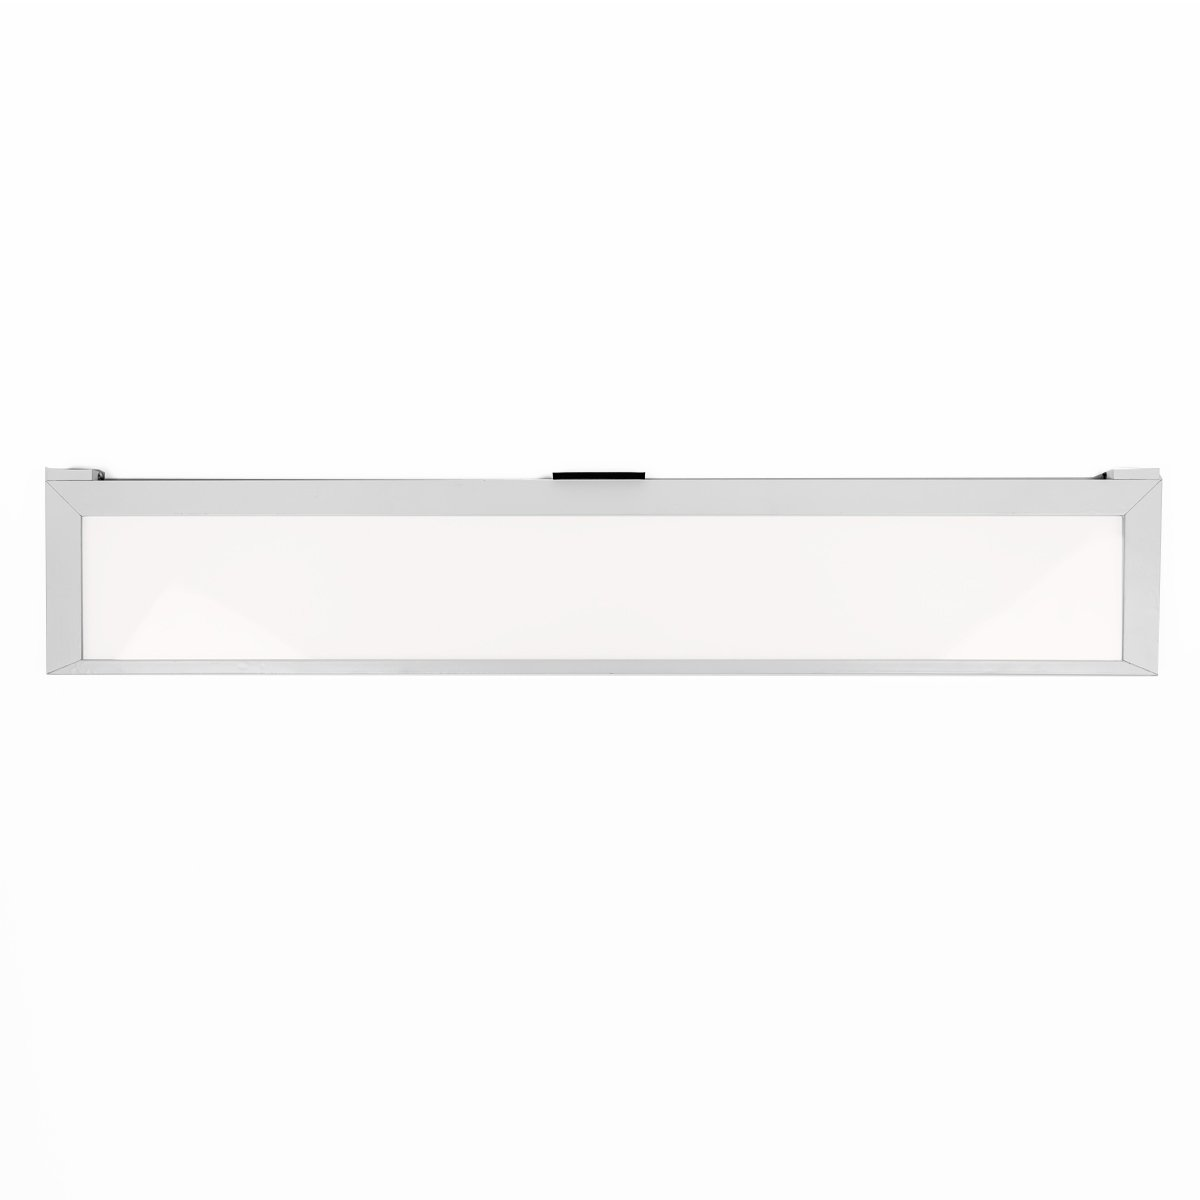 WAC Lighting LN-LED24P-27-WT Contemporary LINE 2.0 LED Undercabinet Light by WAC Lighting